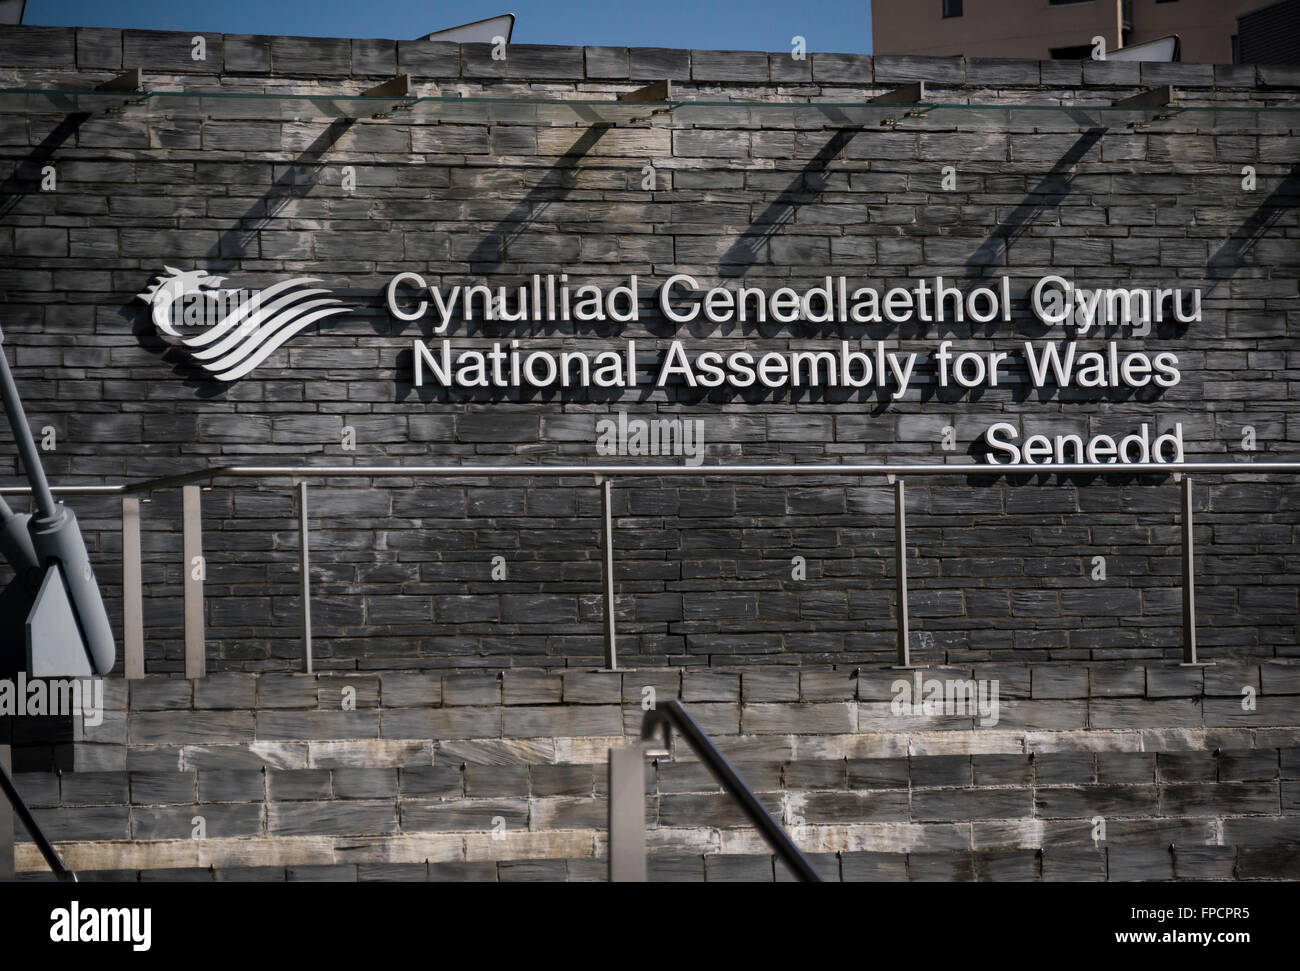 Sign of National Assembly for Wales, Cardiff Bay, Cardiff, South Glamorgan, Wales, UK, Europe - Stock Image